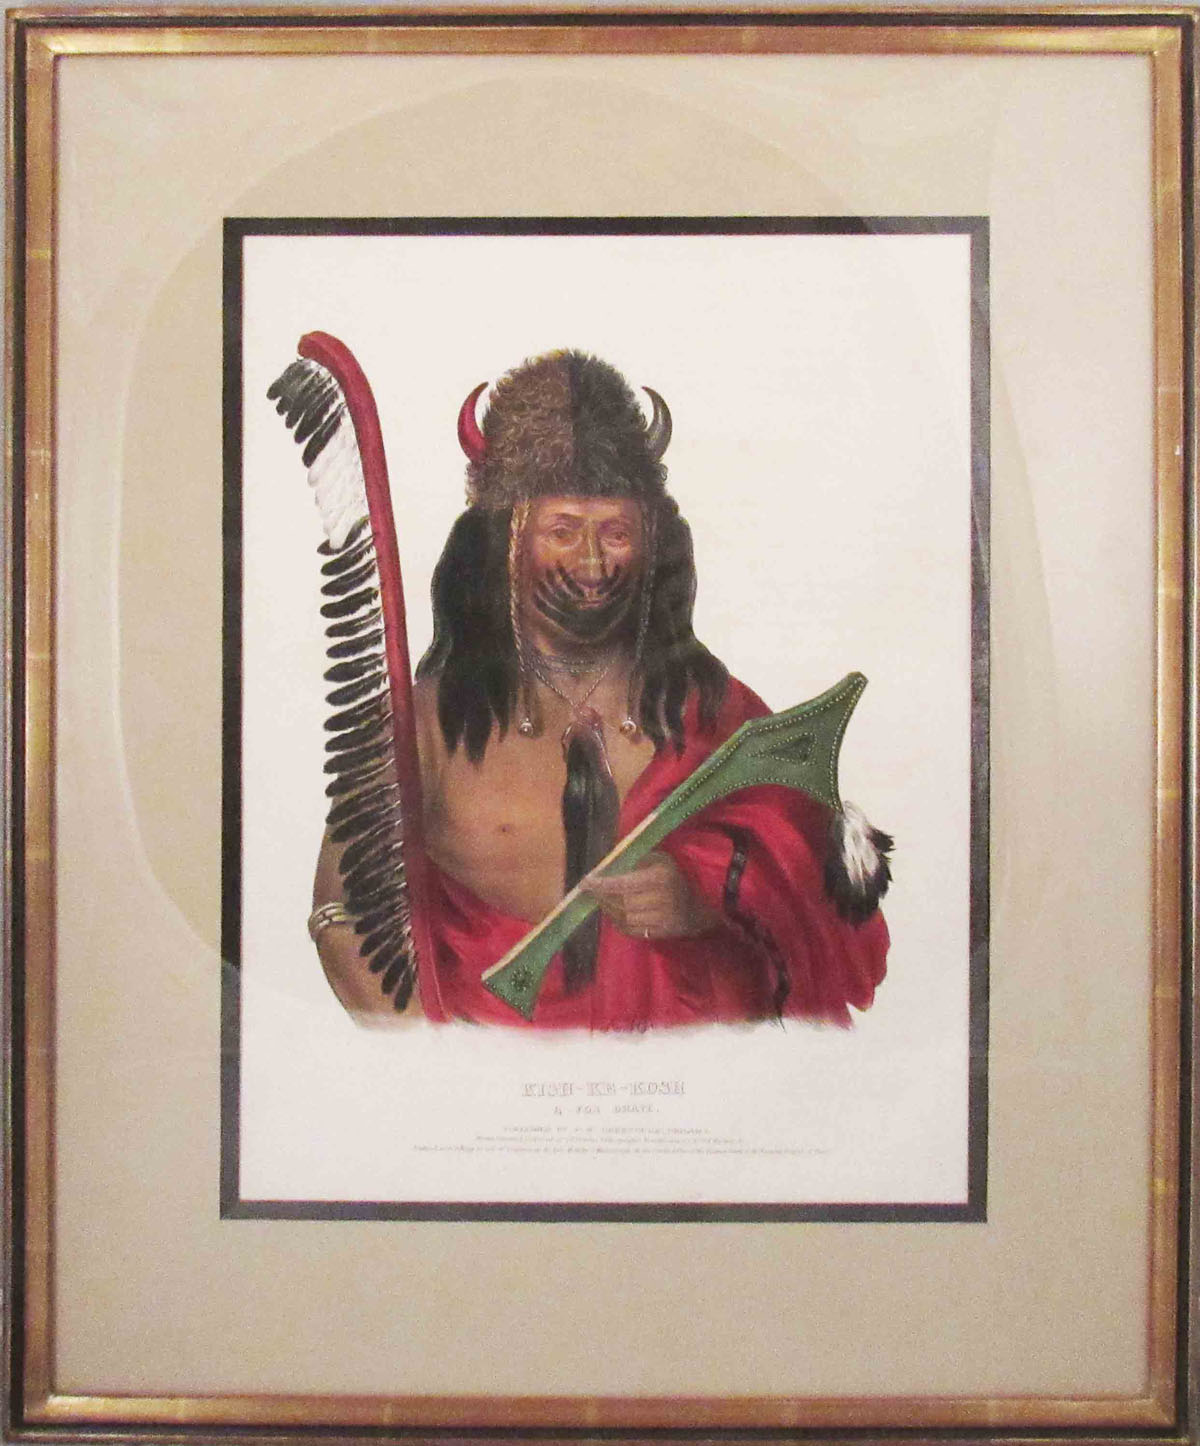 [Plate] KISH-KE-KOSH. A Fox Brave. [From HISTORY OF THE INDIAN TRIBES OF NORTH AMERICA]. Native American, Thomas L. McKenney, James Hall.